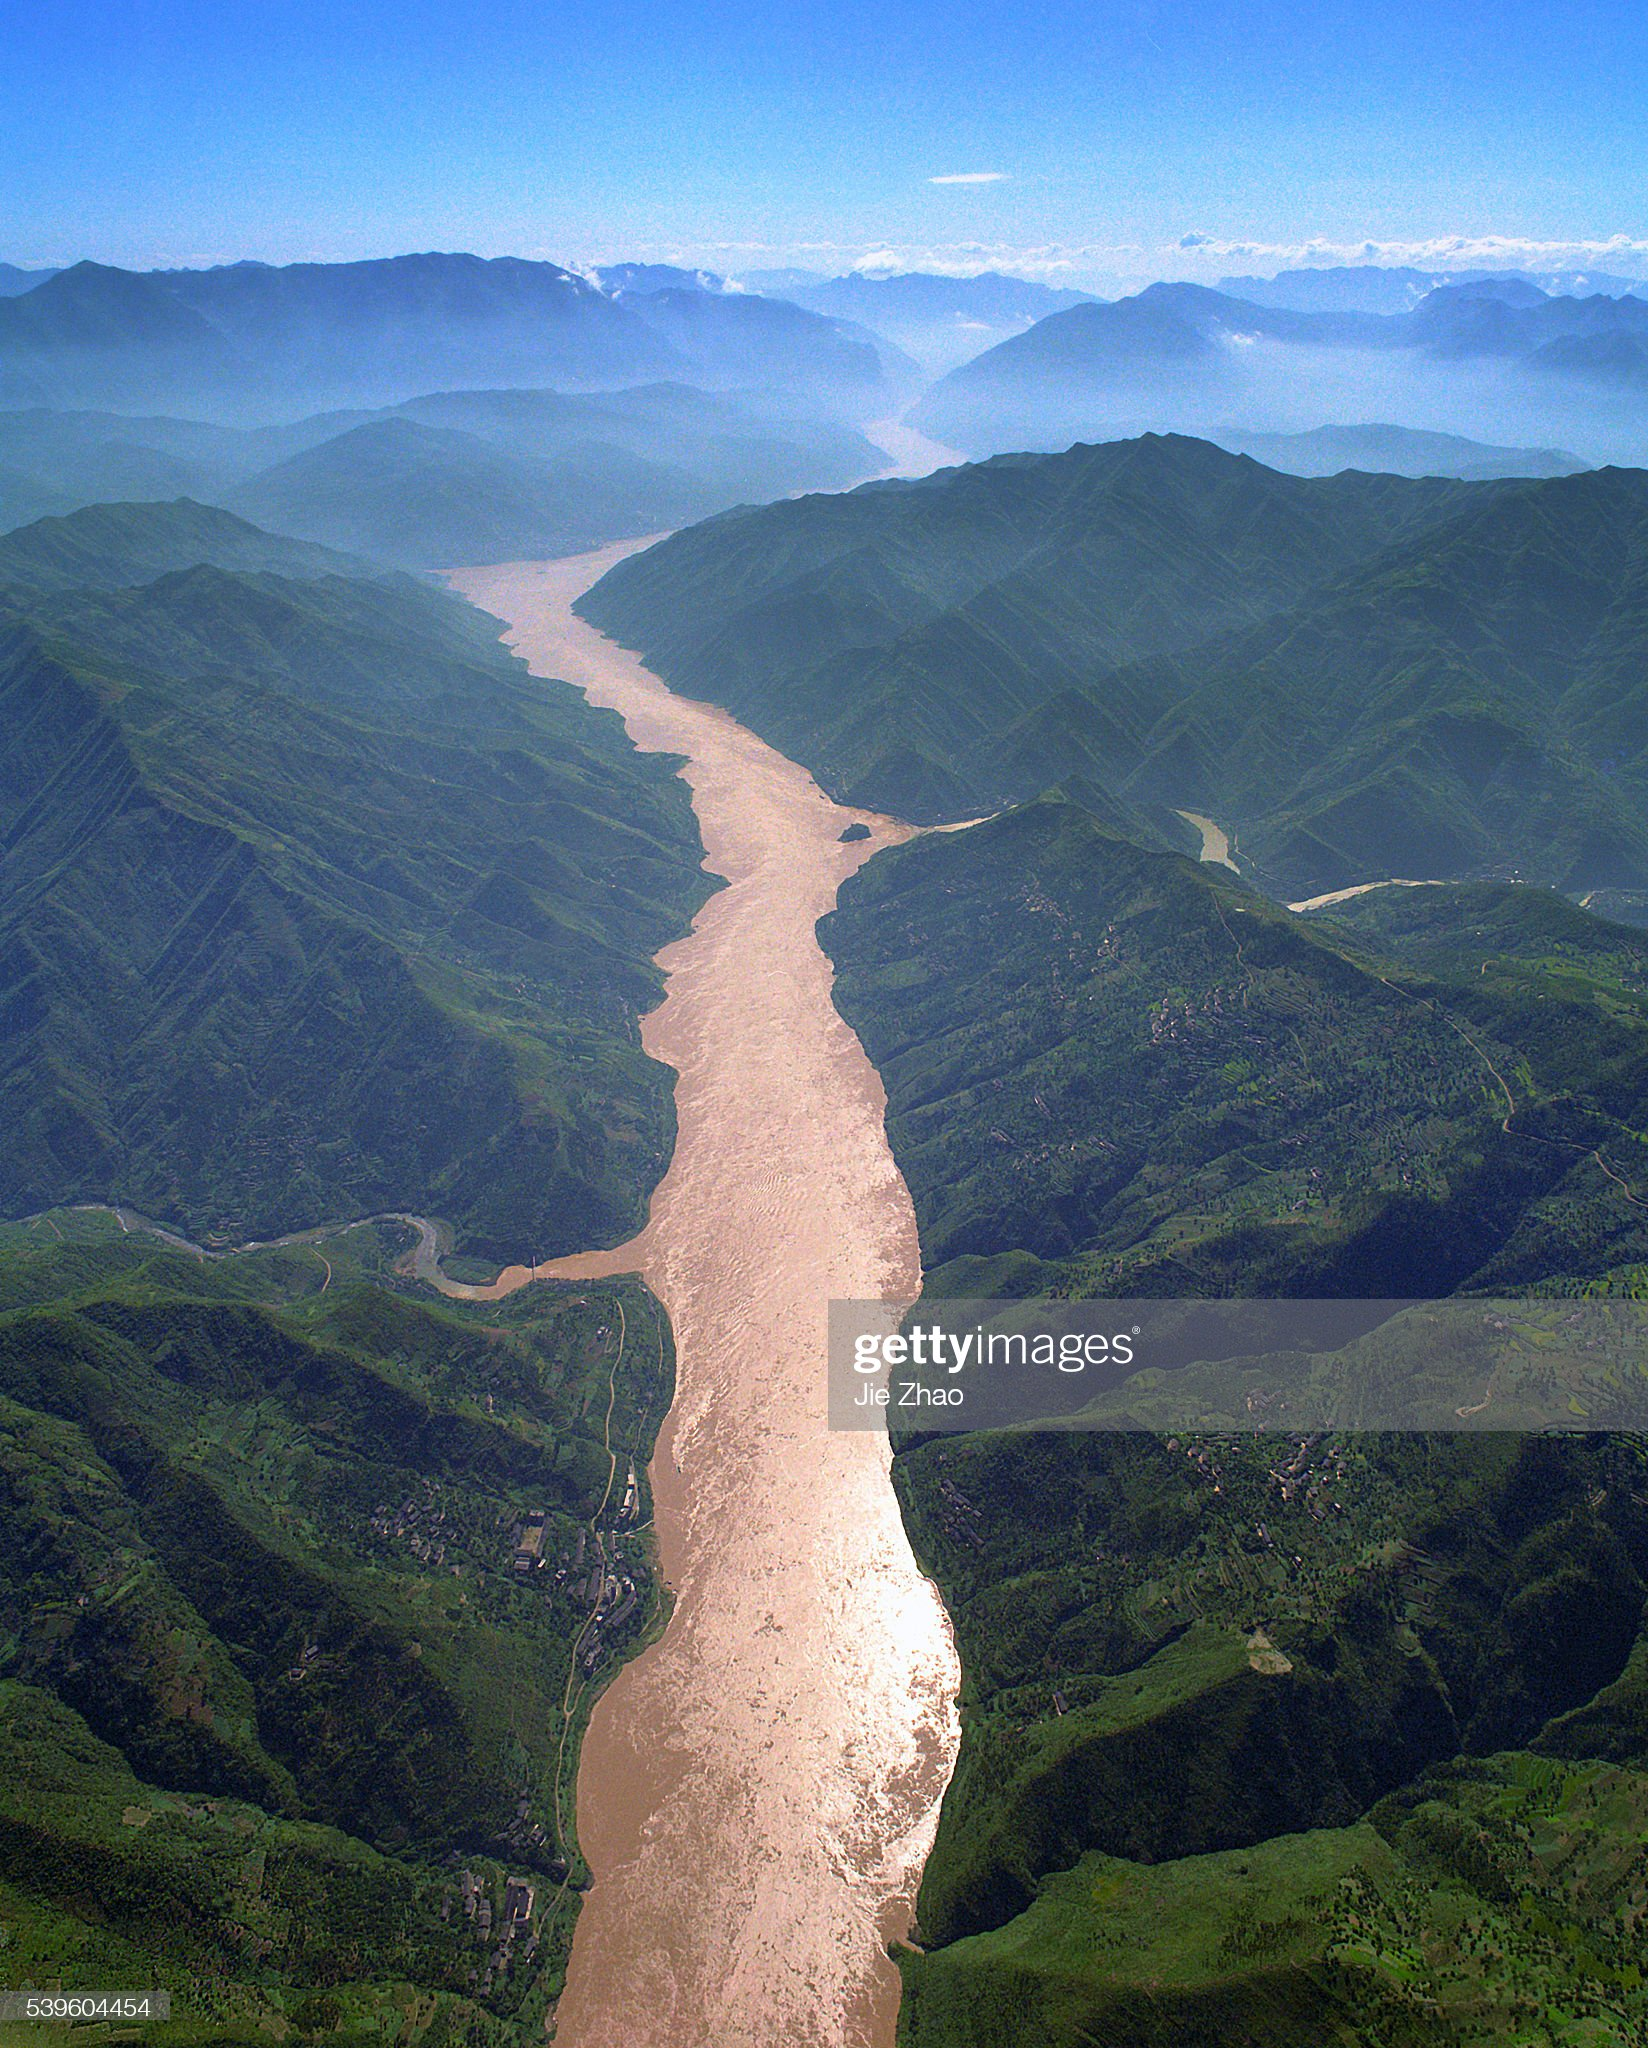 Aerial view of Three Gorges of Yangtze River in China : News Photo